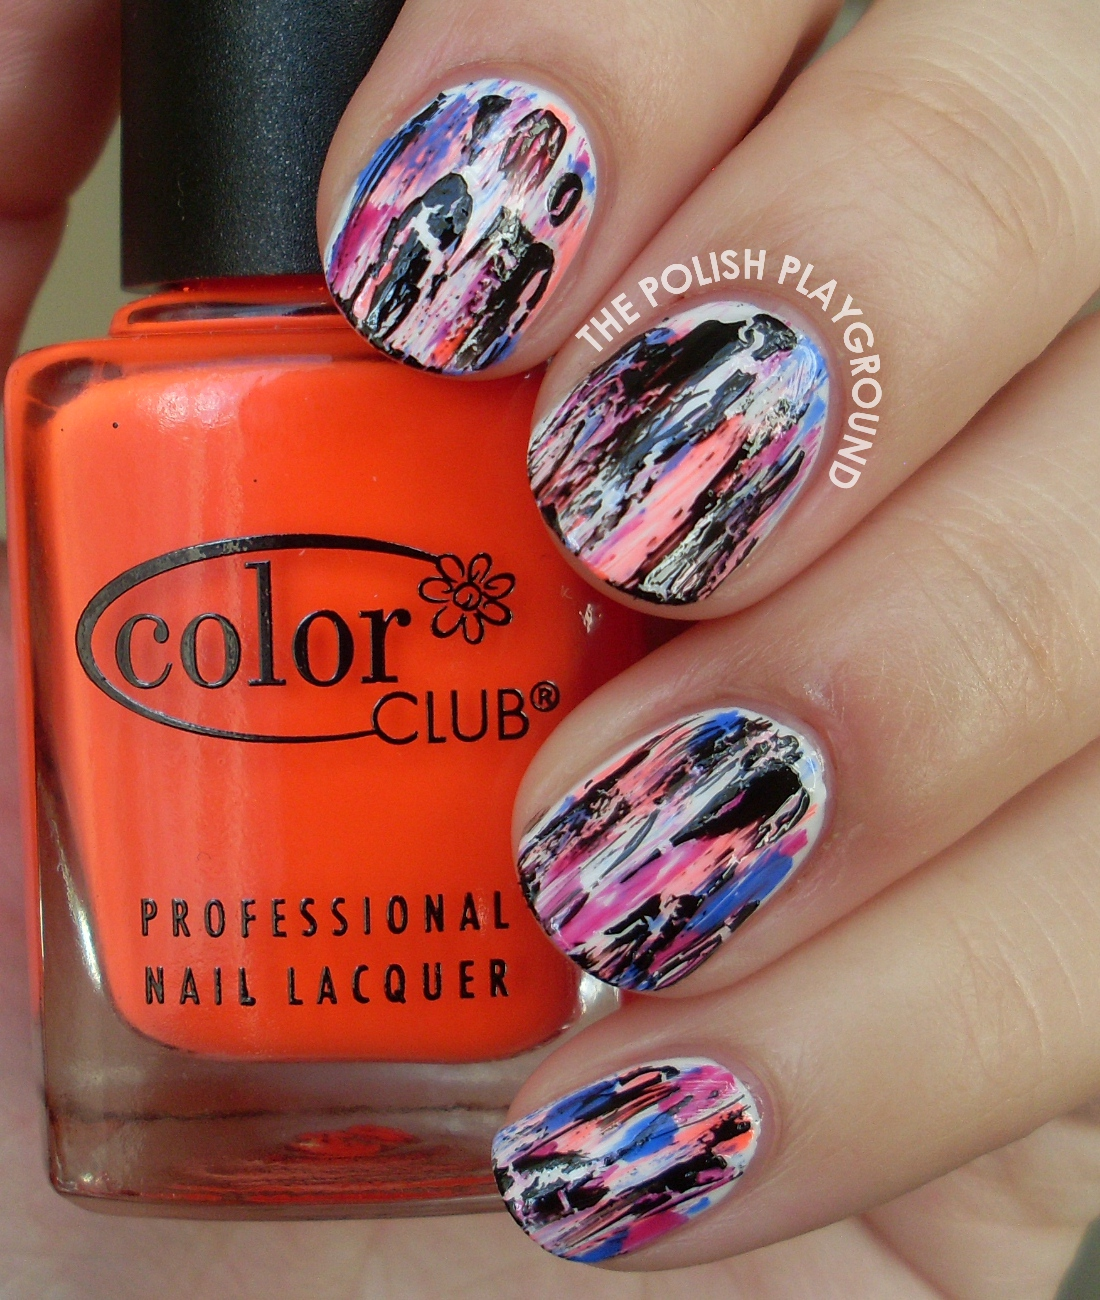 Neon Nail Art: The Polish Playground: Grungy Neon Distressed Nail Art